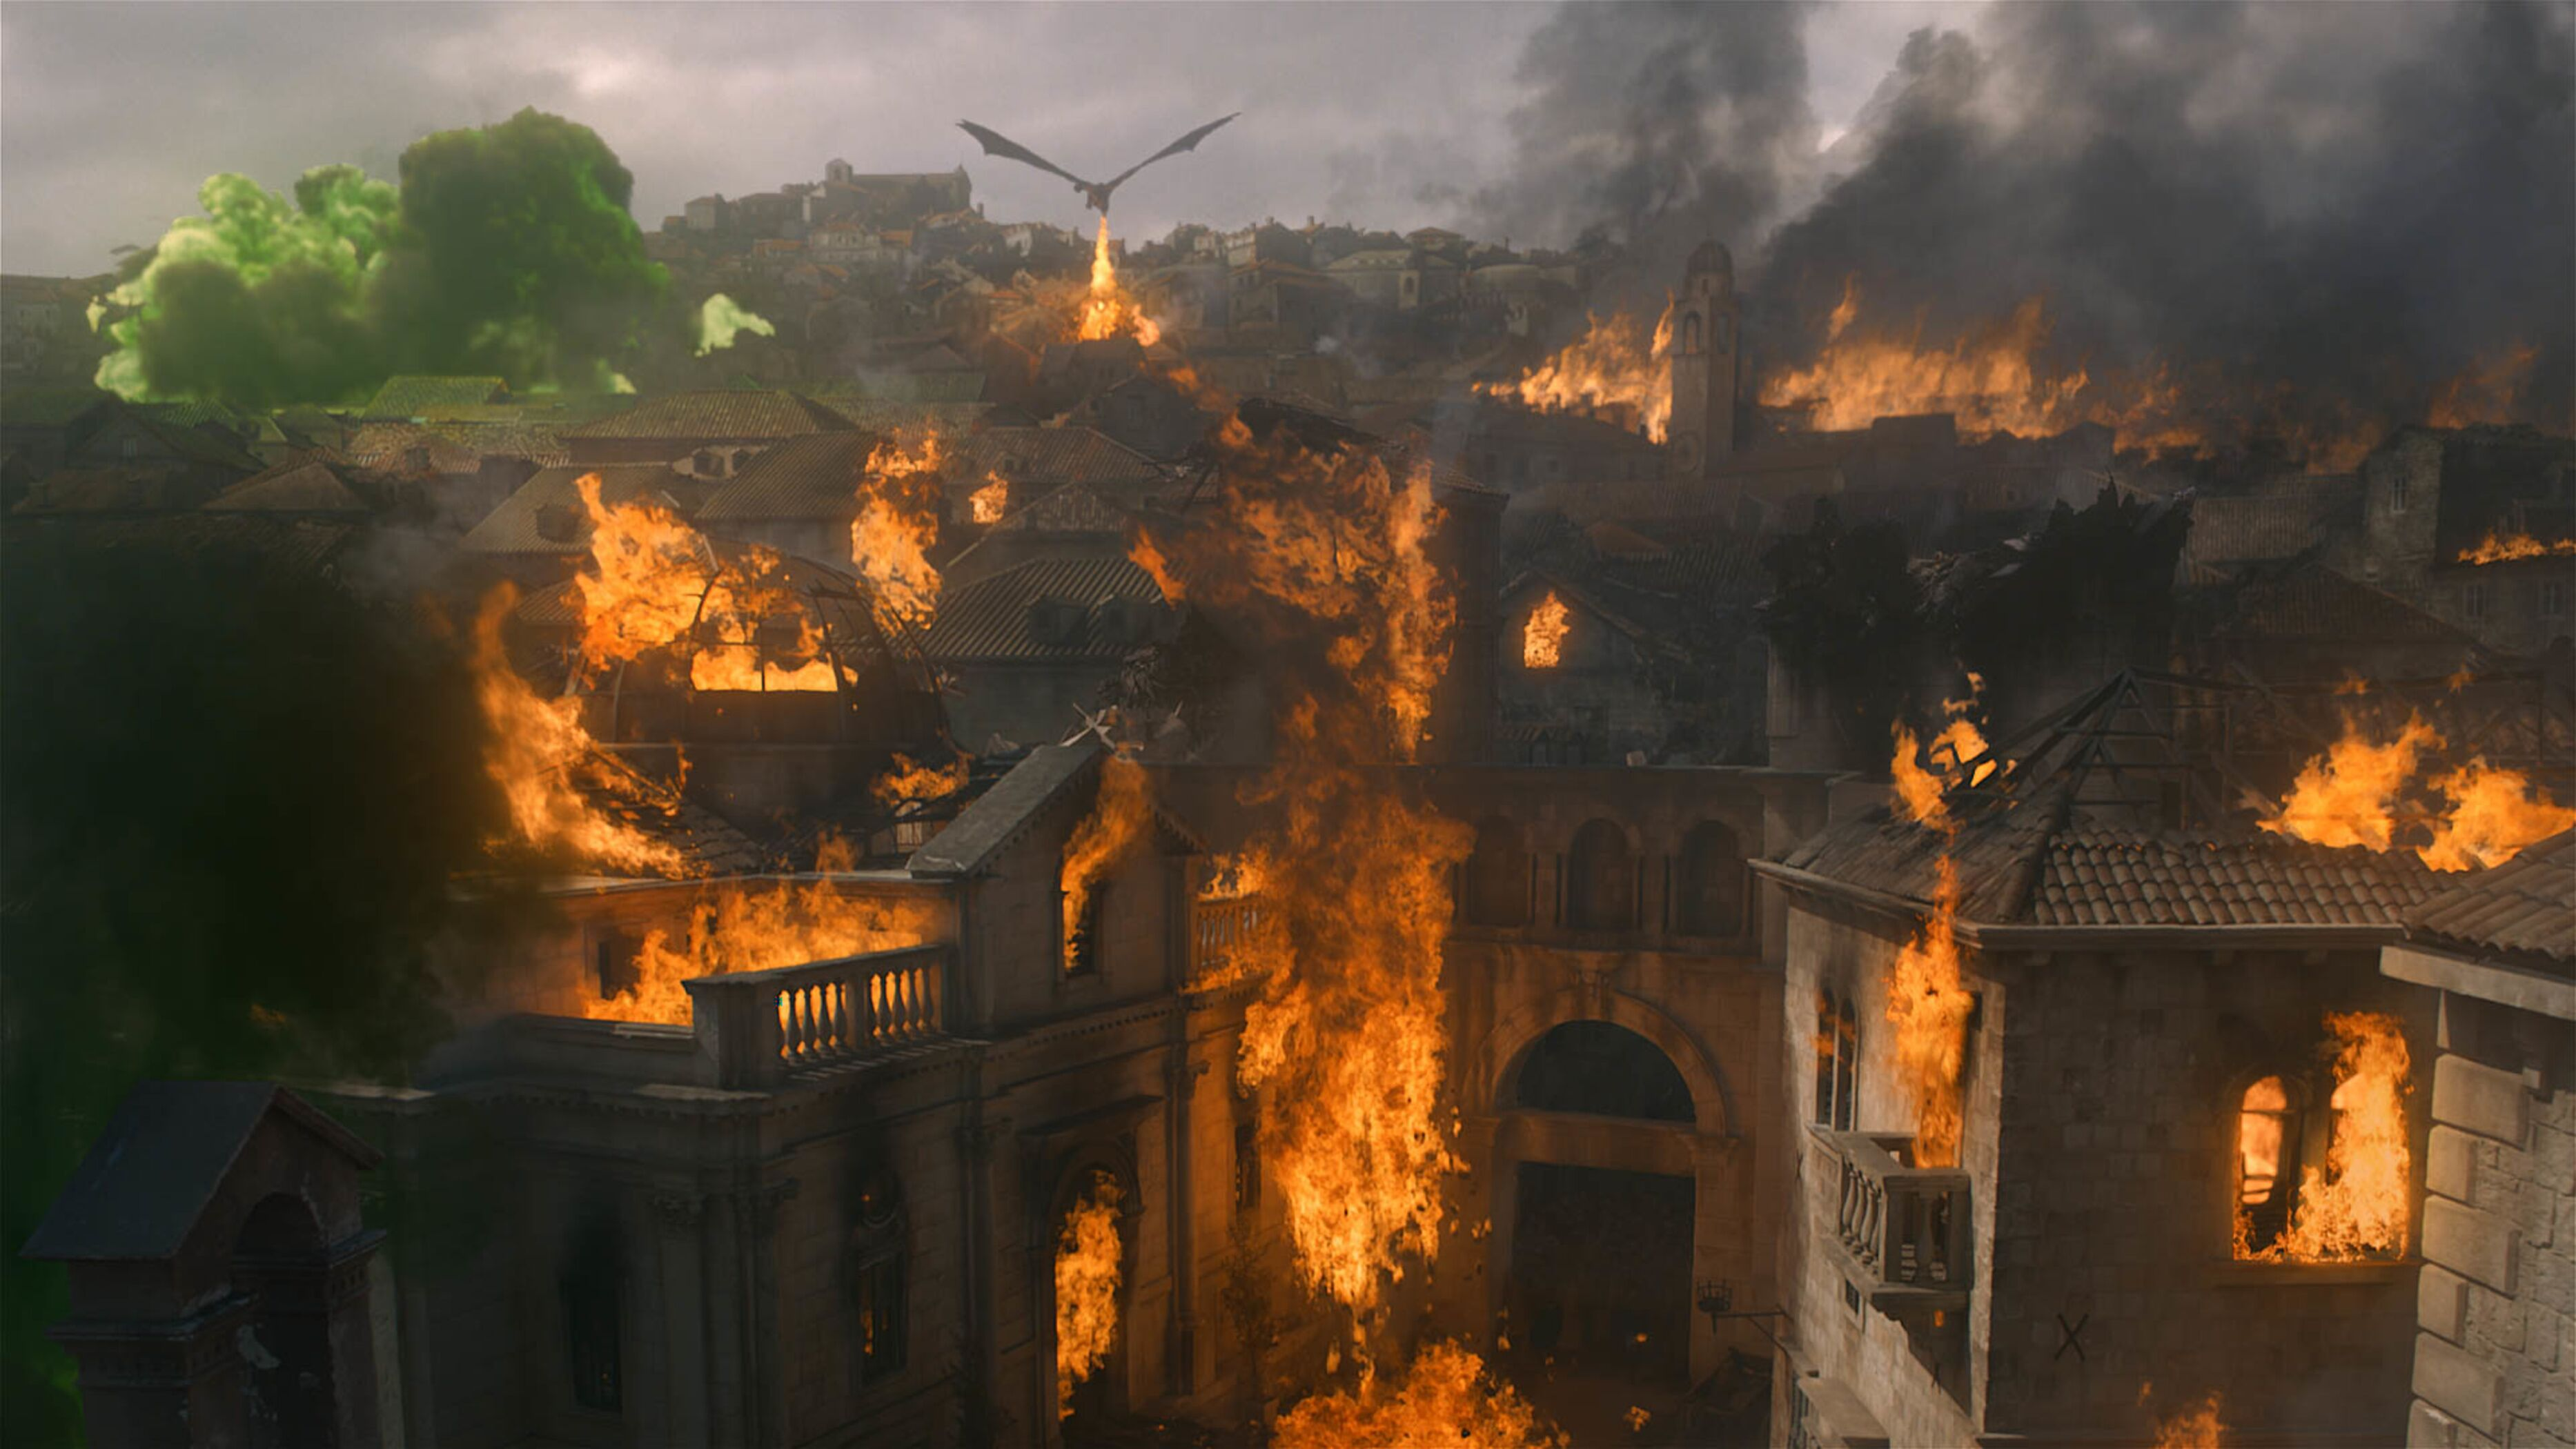 Why are the sets from Game of Thrones season 8 still standing?